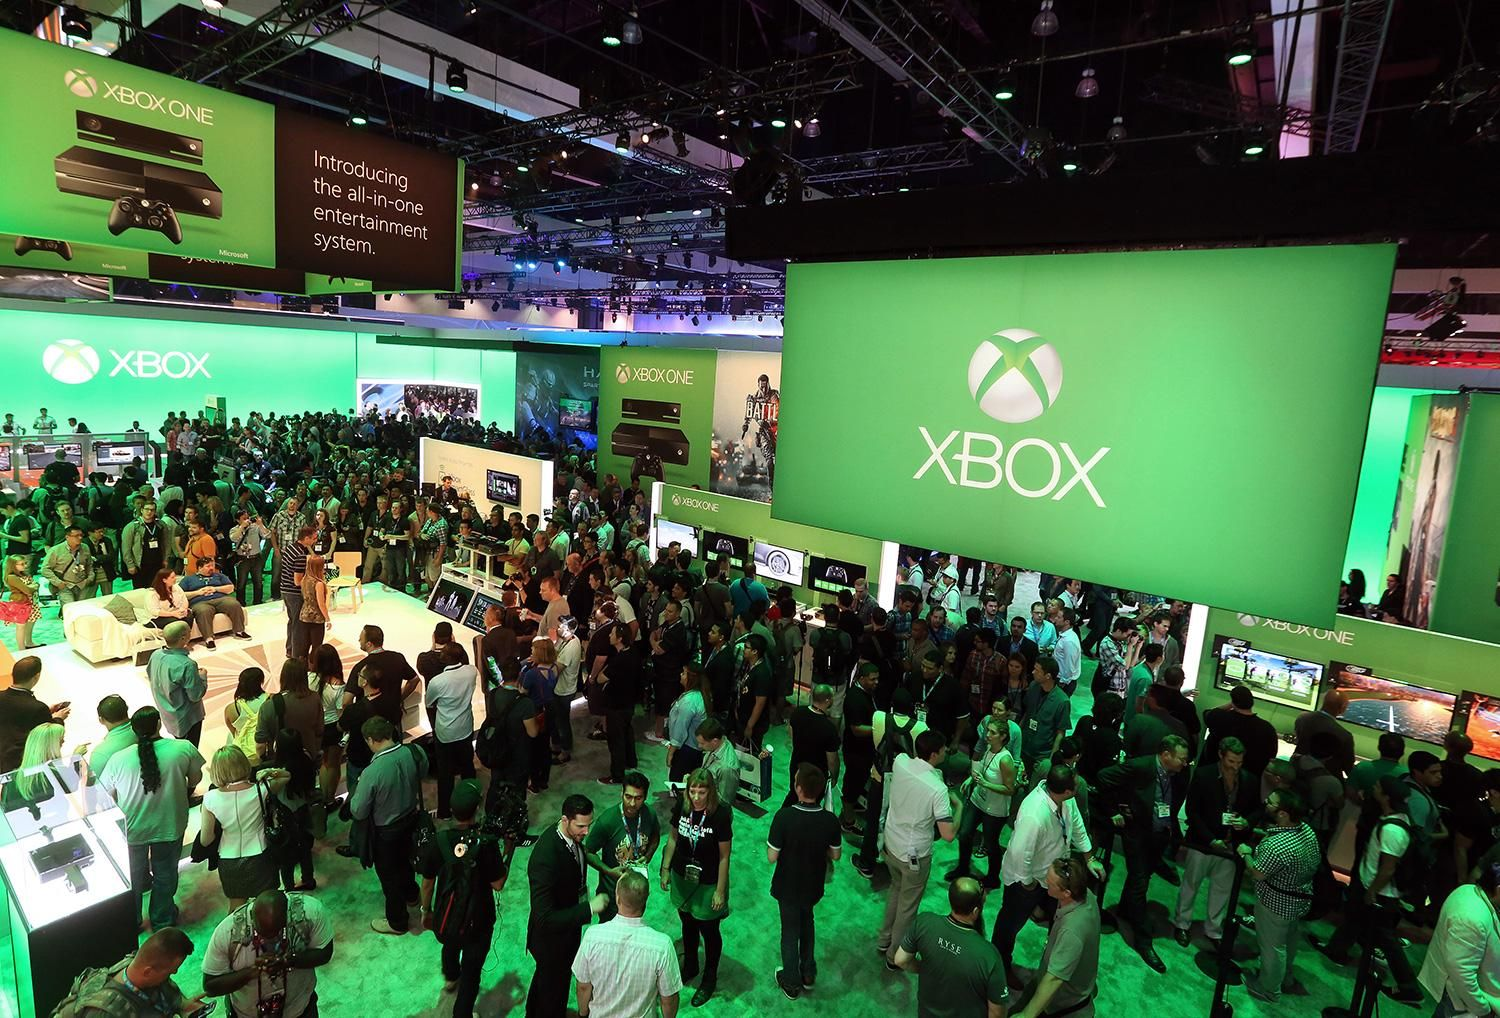 Expo Exhibition Stands Xbox One : Sxsw gaming expo in austin texas tradeshow board xbox